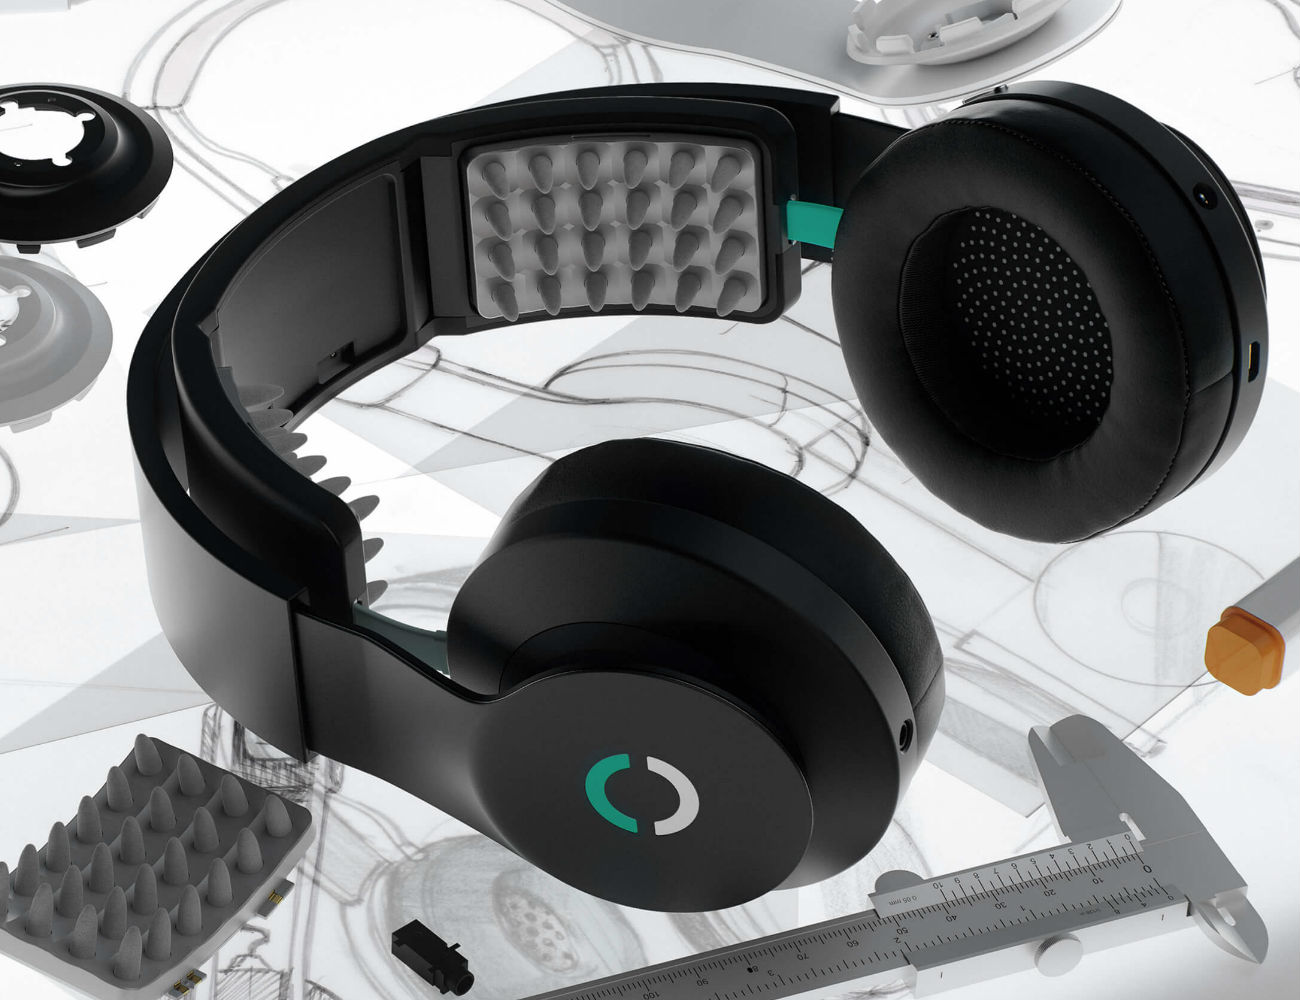 Halo Sport Neurotechnology Headset